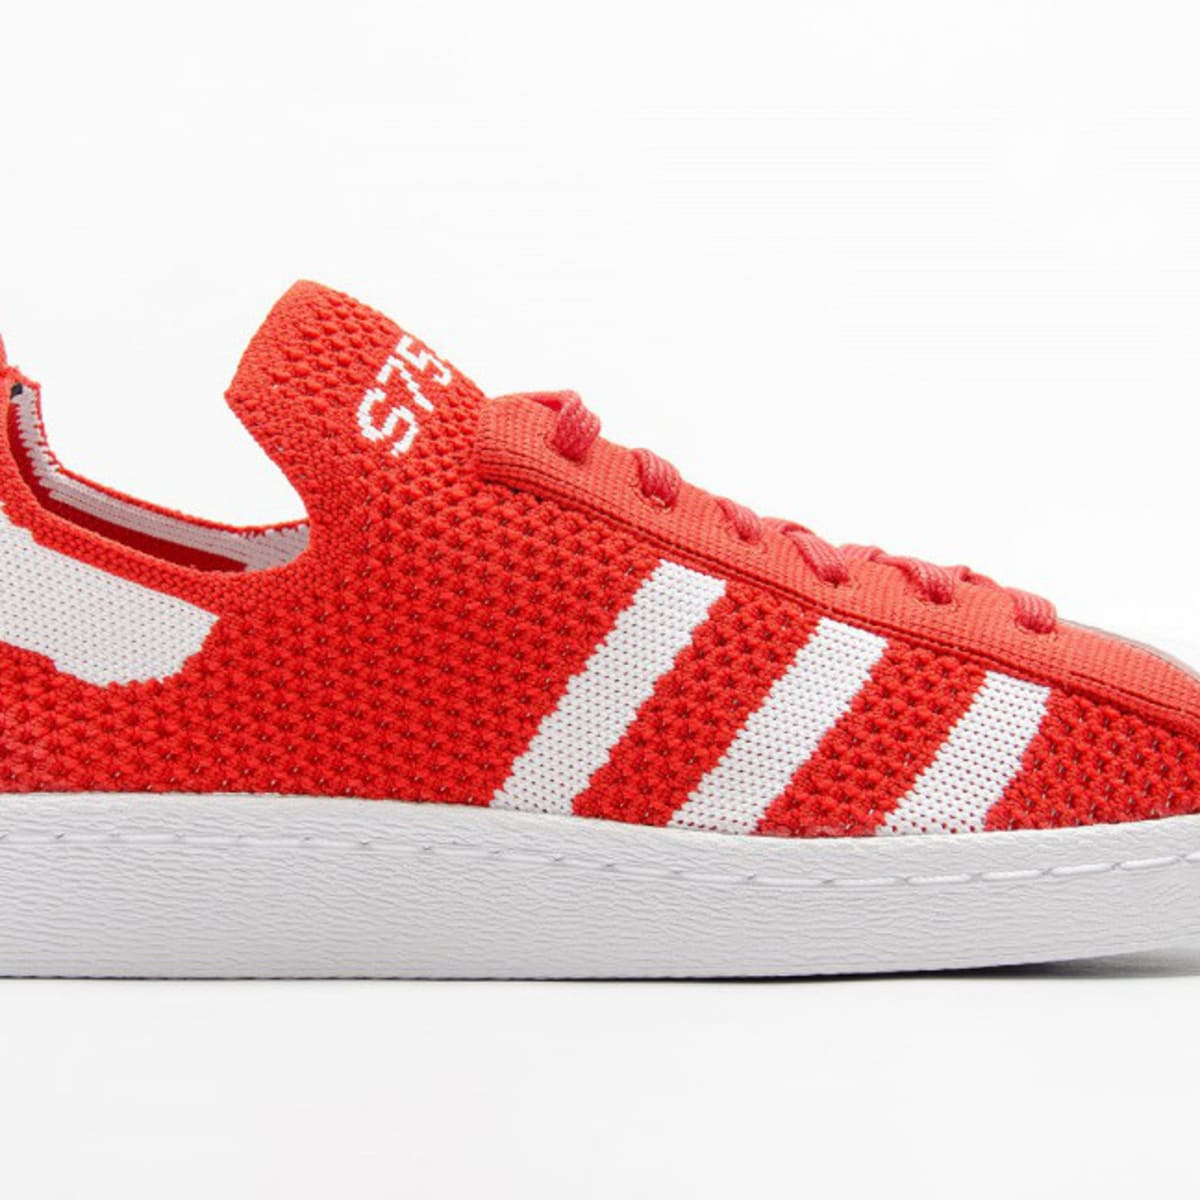 The adidas Superstar 80s Gets the Primeknit Treatment - Freshness Mag